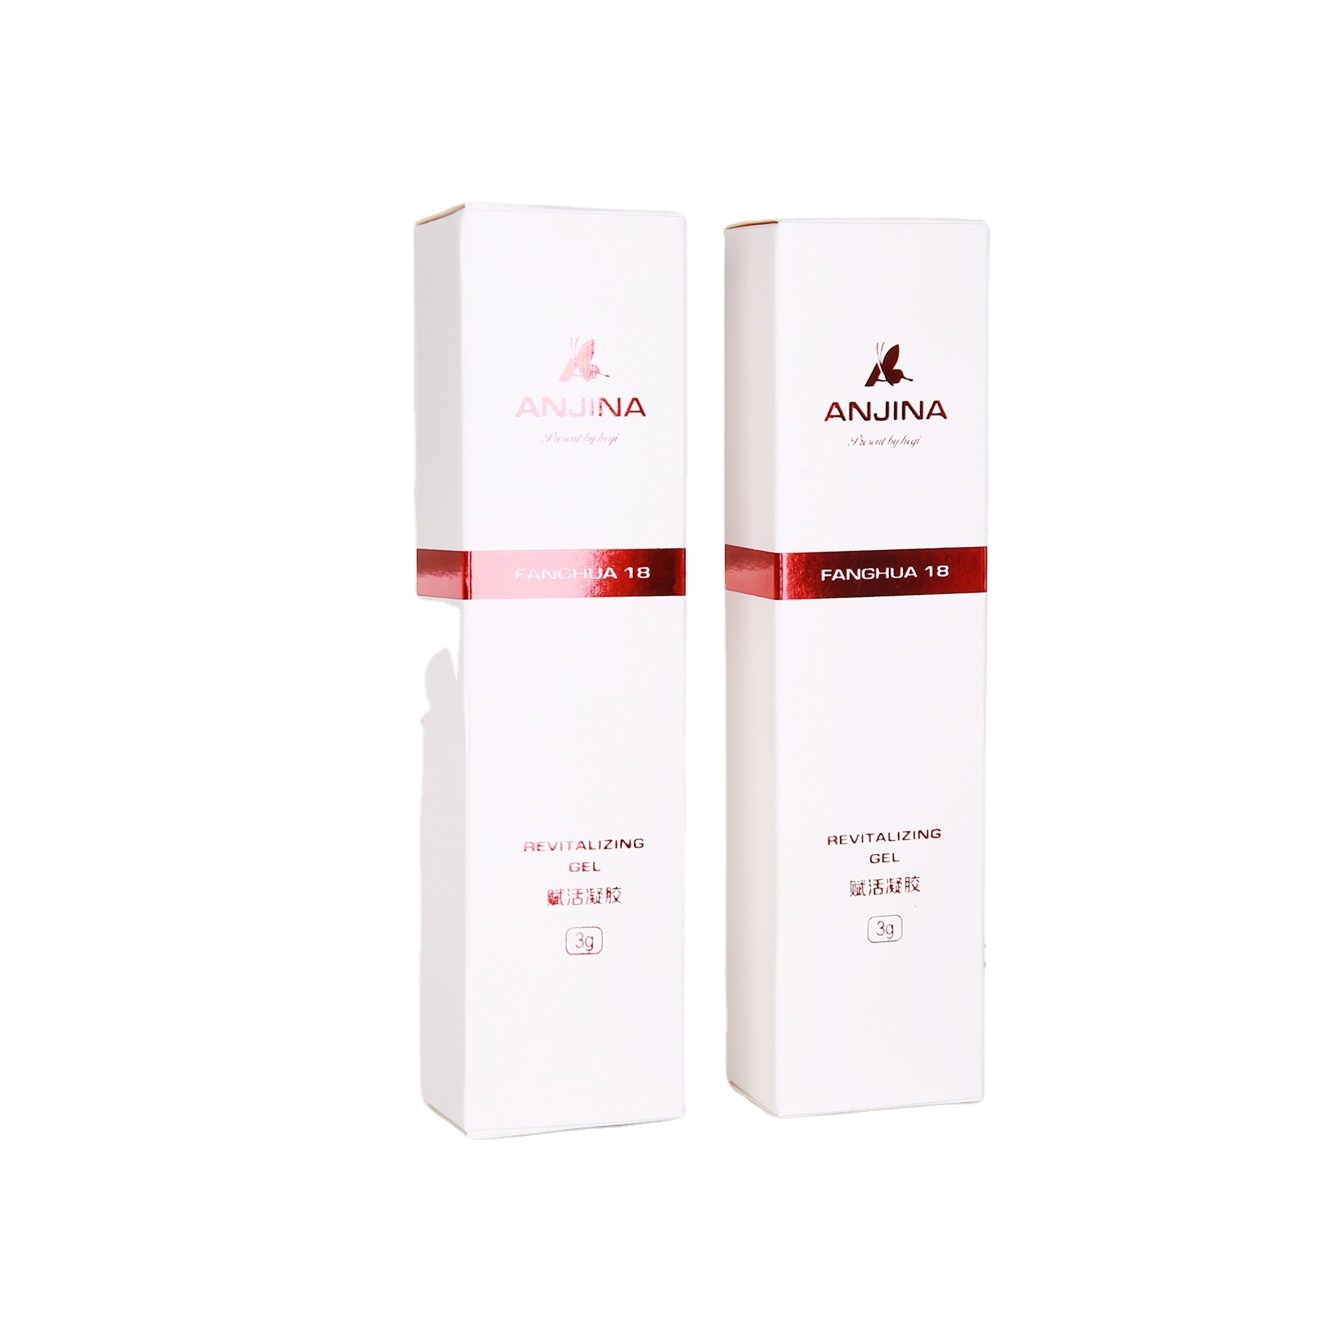 Organic Feminine Hygiene Intimate Vaginal Cleaning Tightening Gel with Private Label